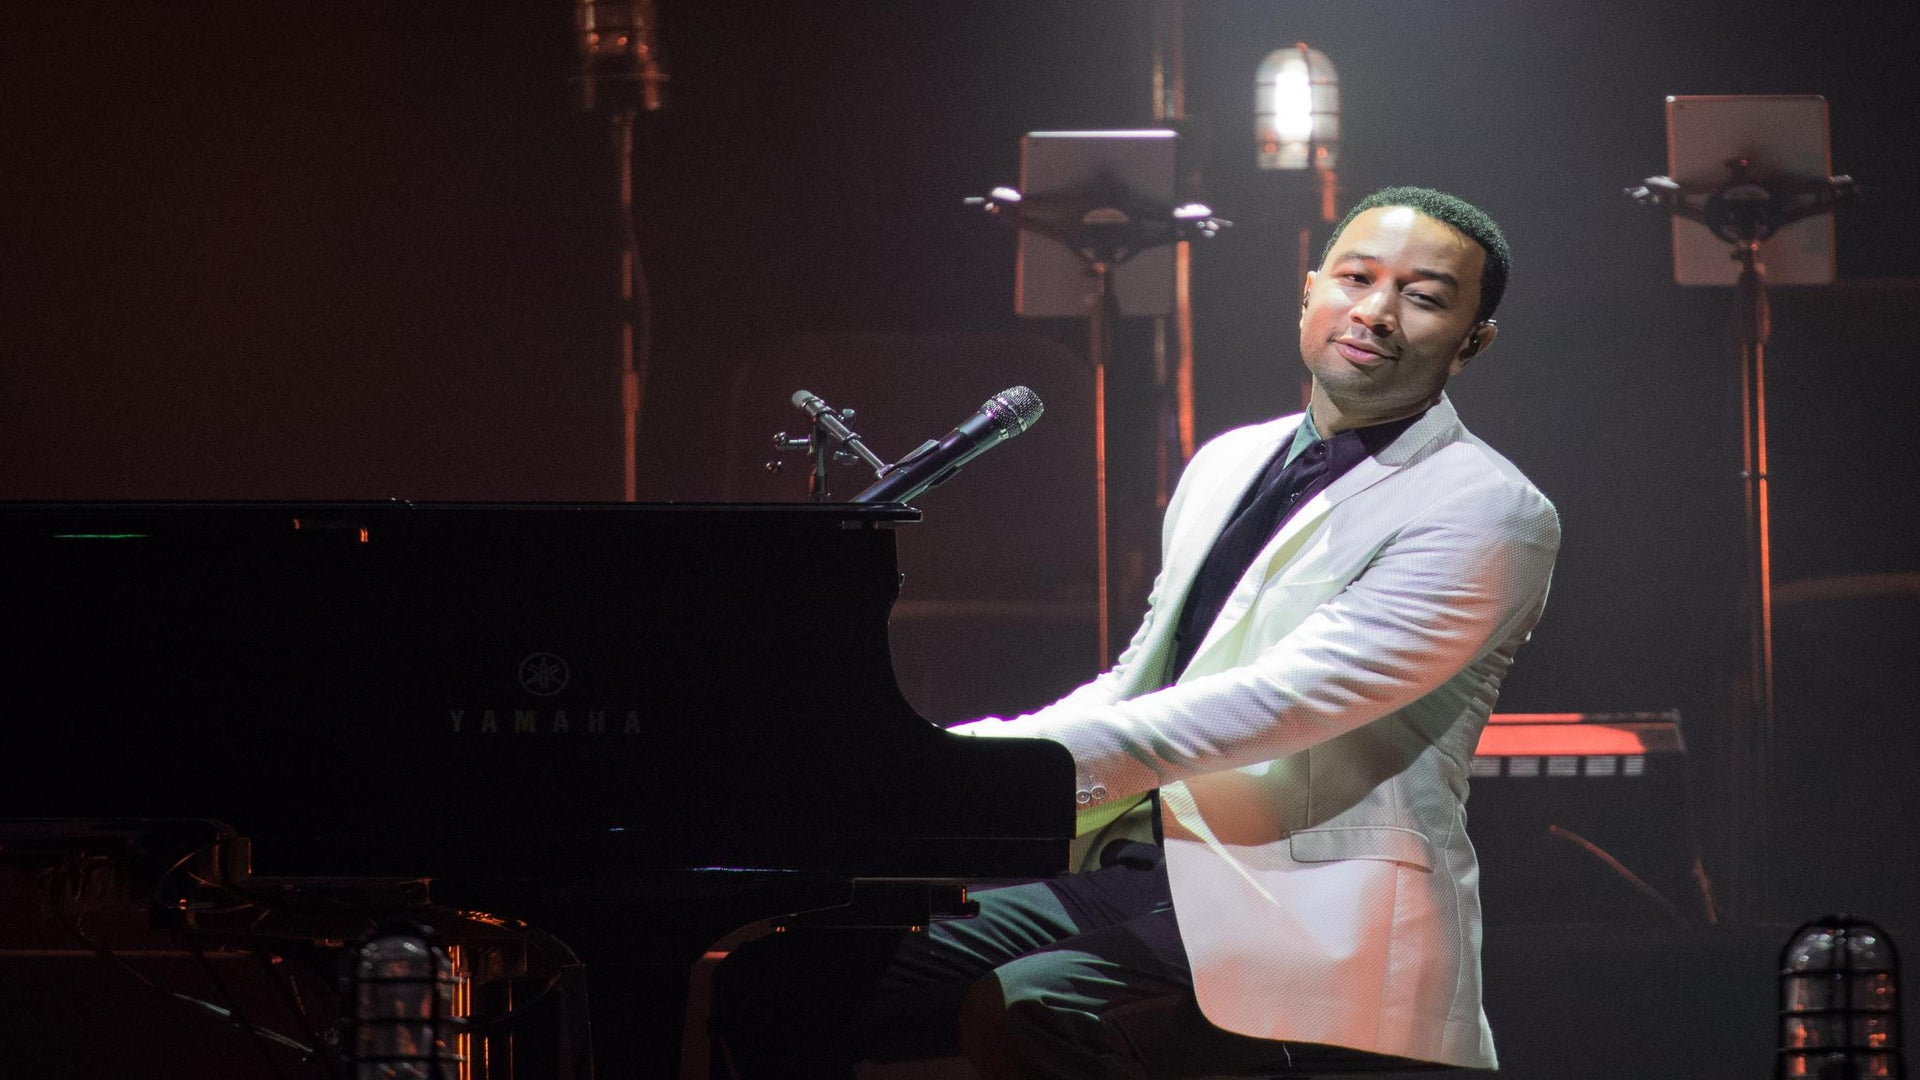 John Legend Backs Out of Beverly Hills Hotel Performance Due to Owner's Anti-Women, LGBTQ Policies